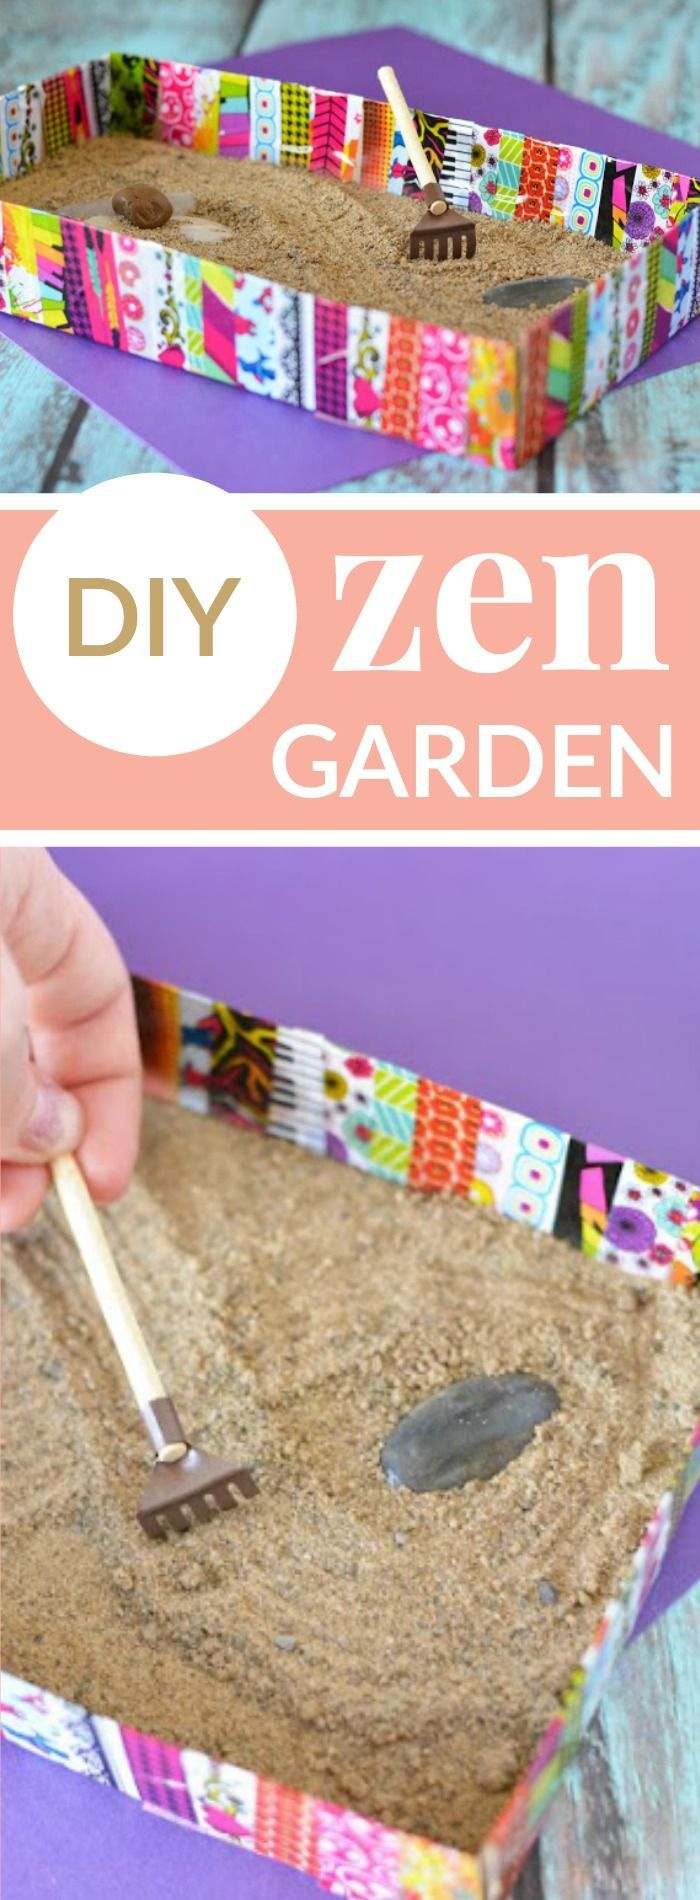 1000 Images About Crafts Diy Ideas On Pinterest Duct 400 x 300